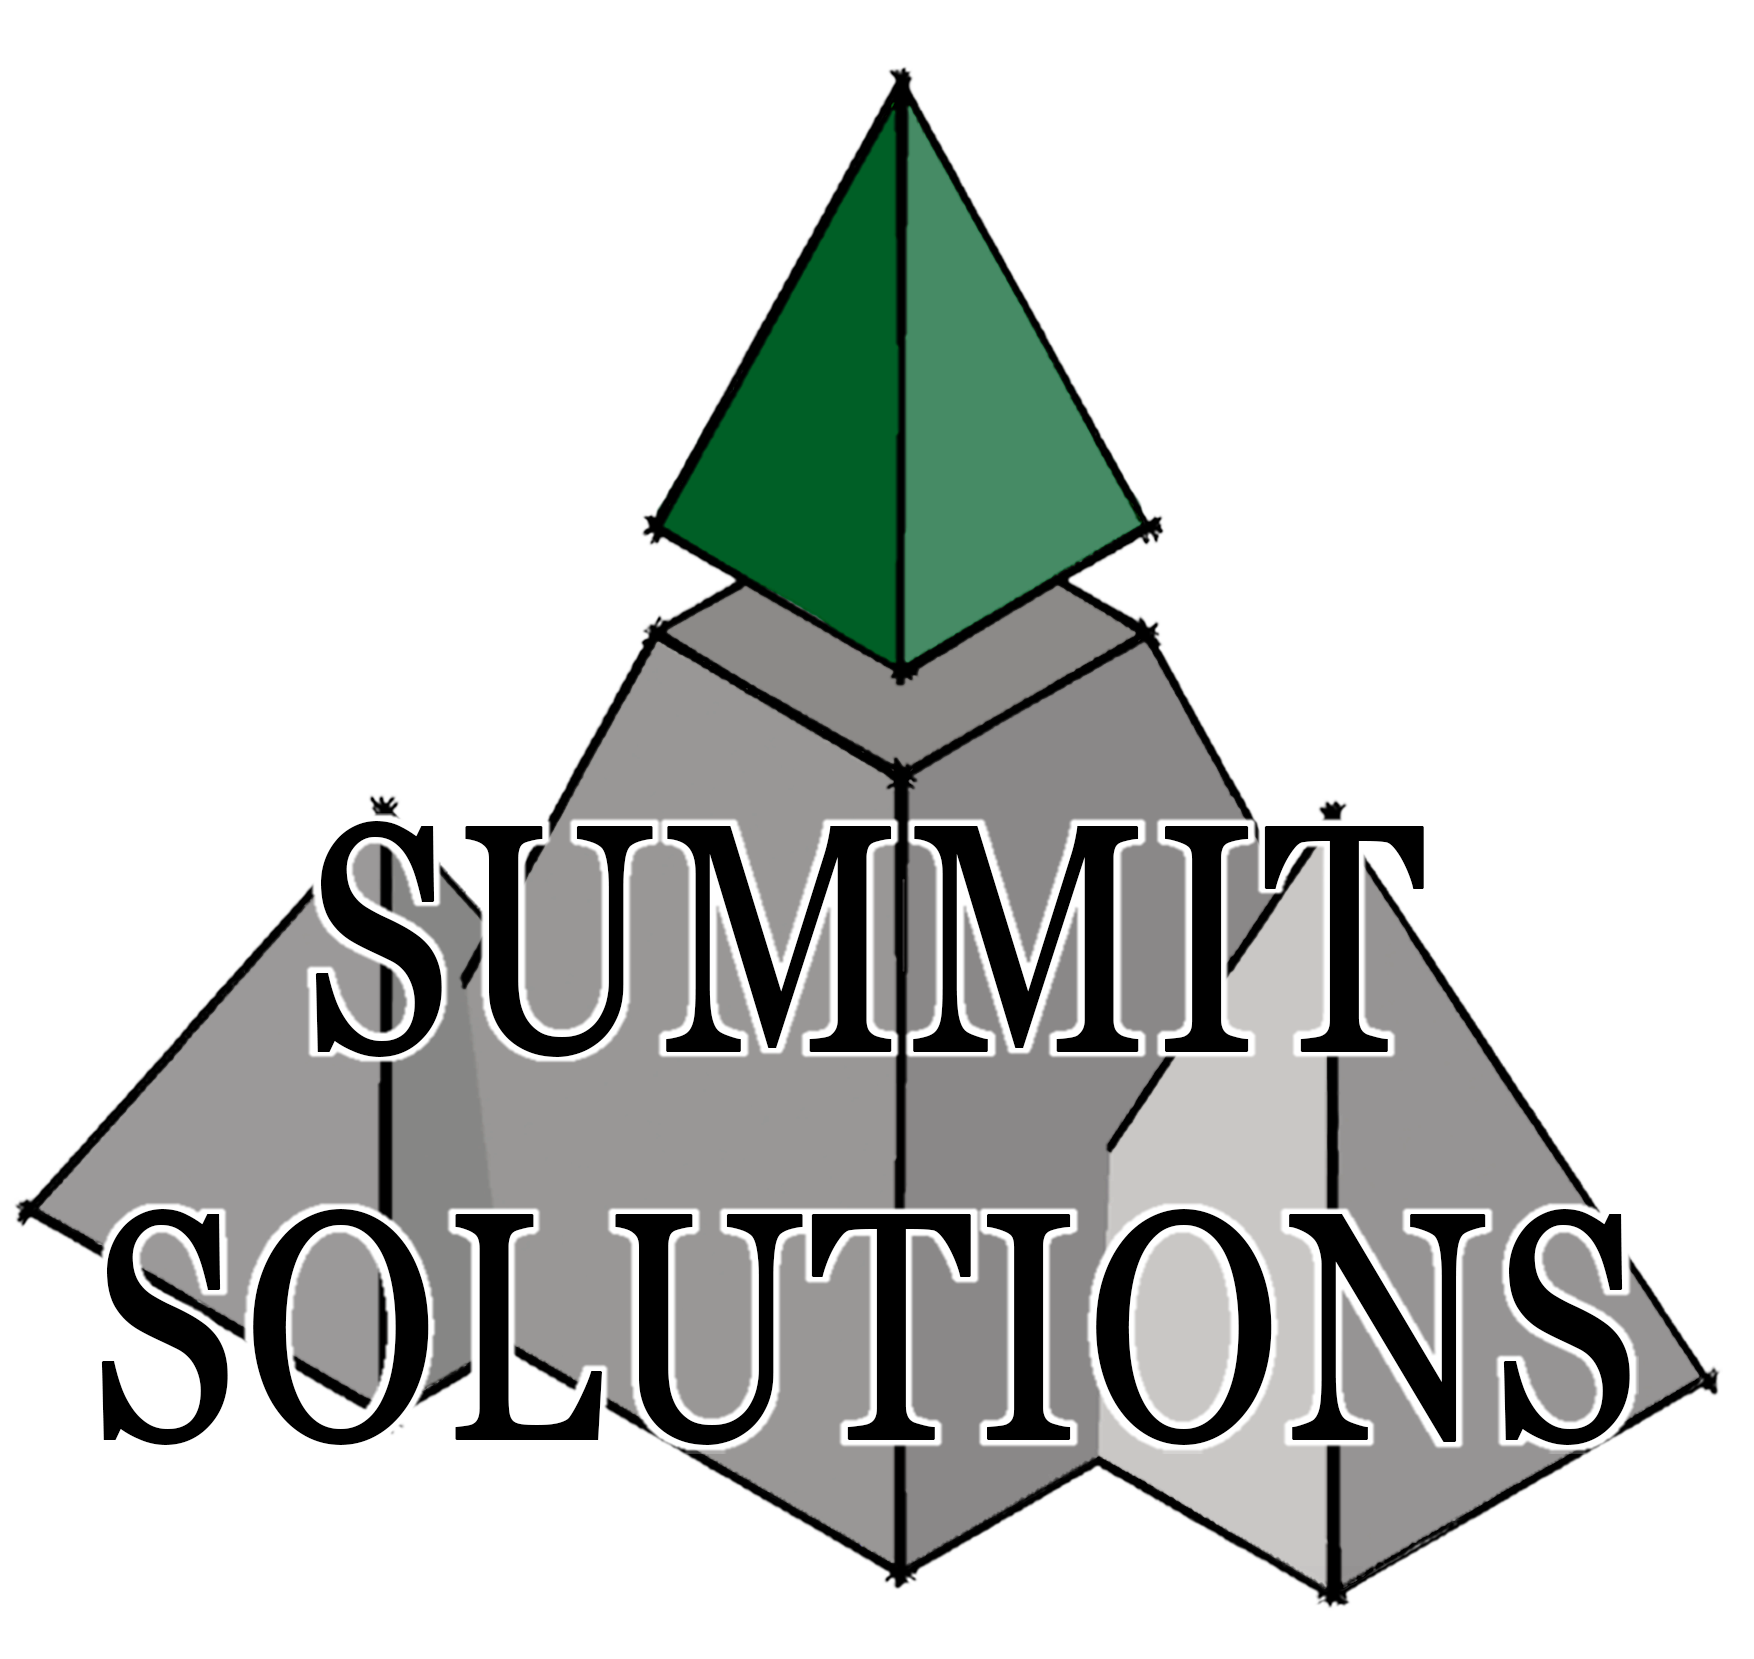 azienda Summit Solutions